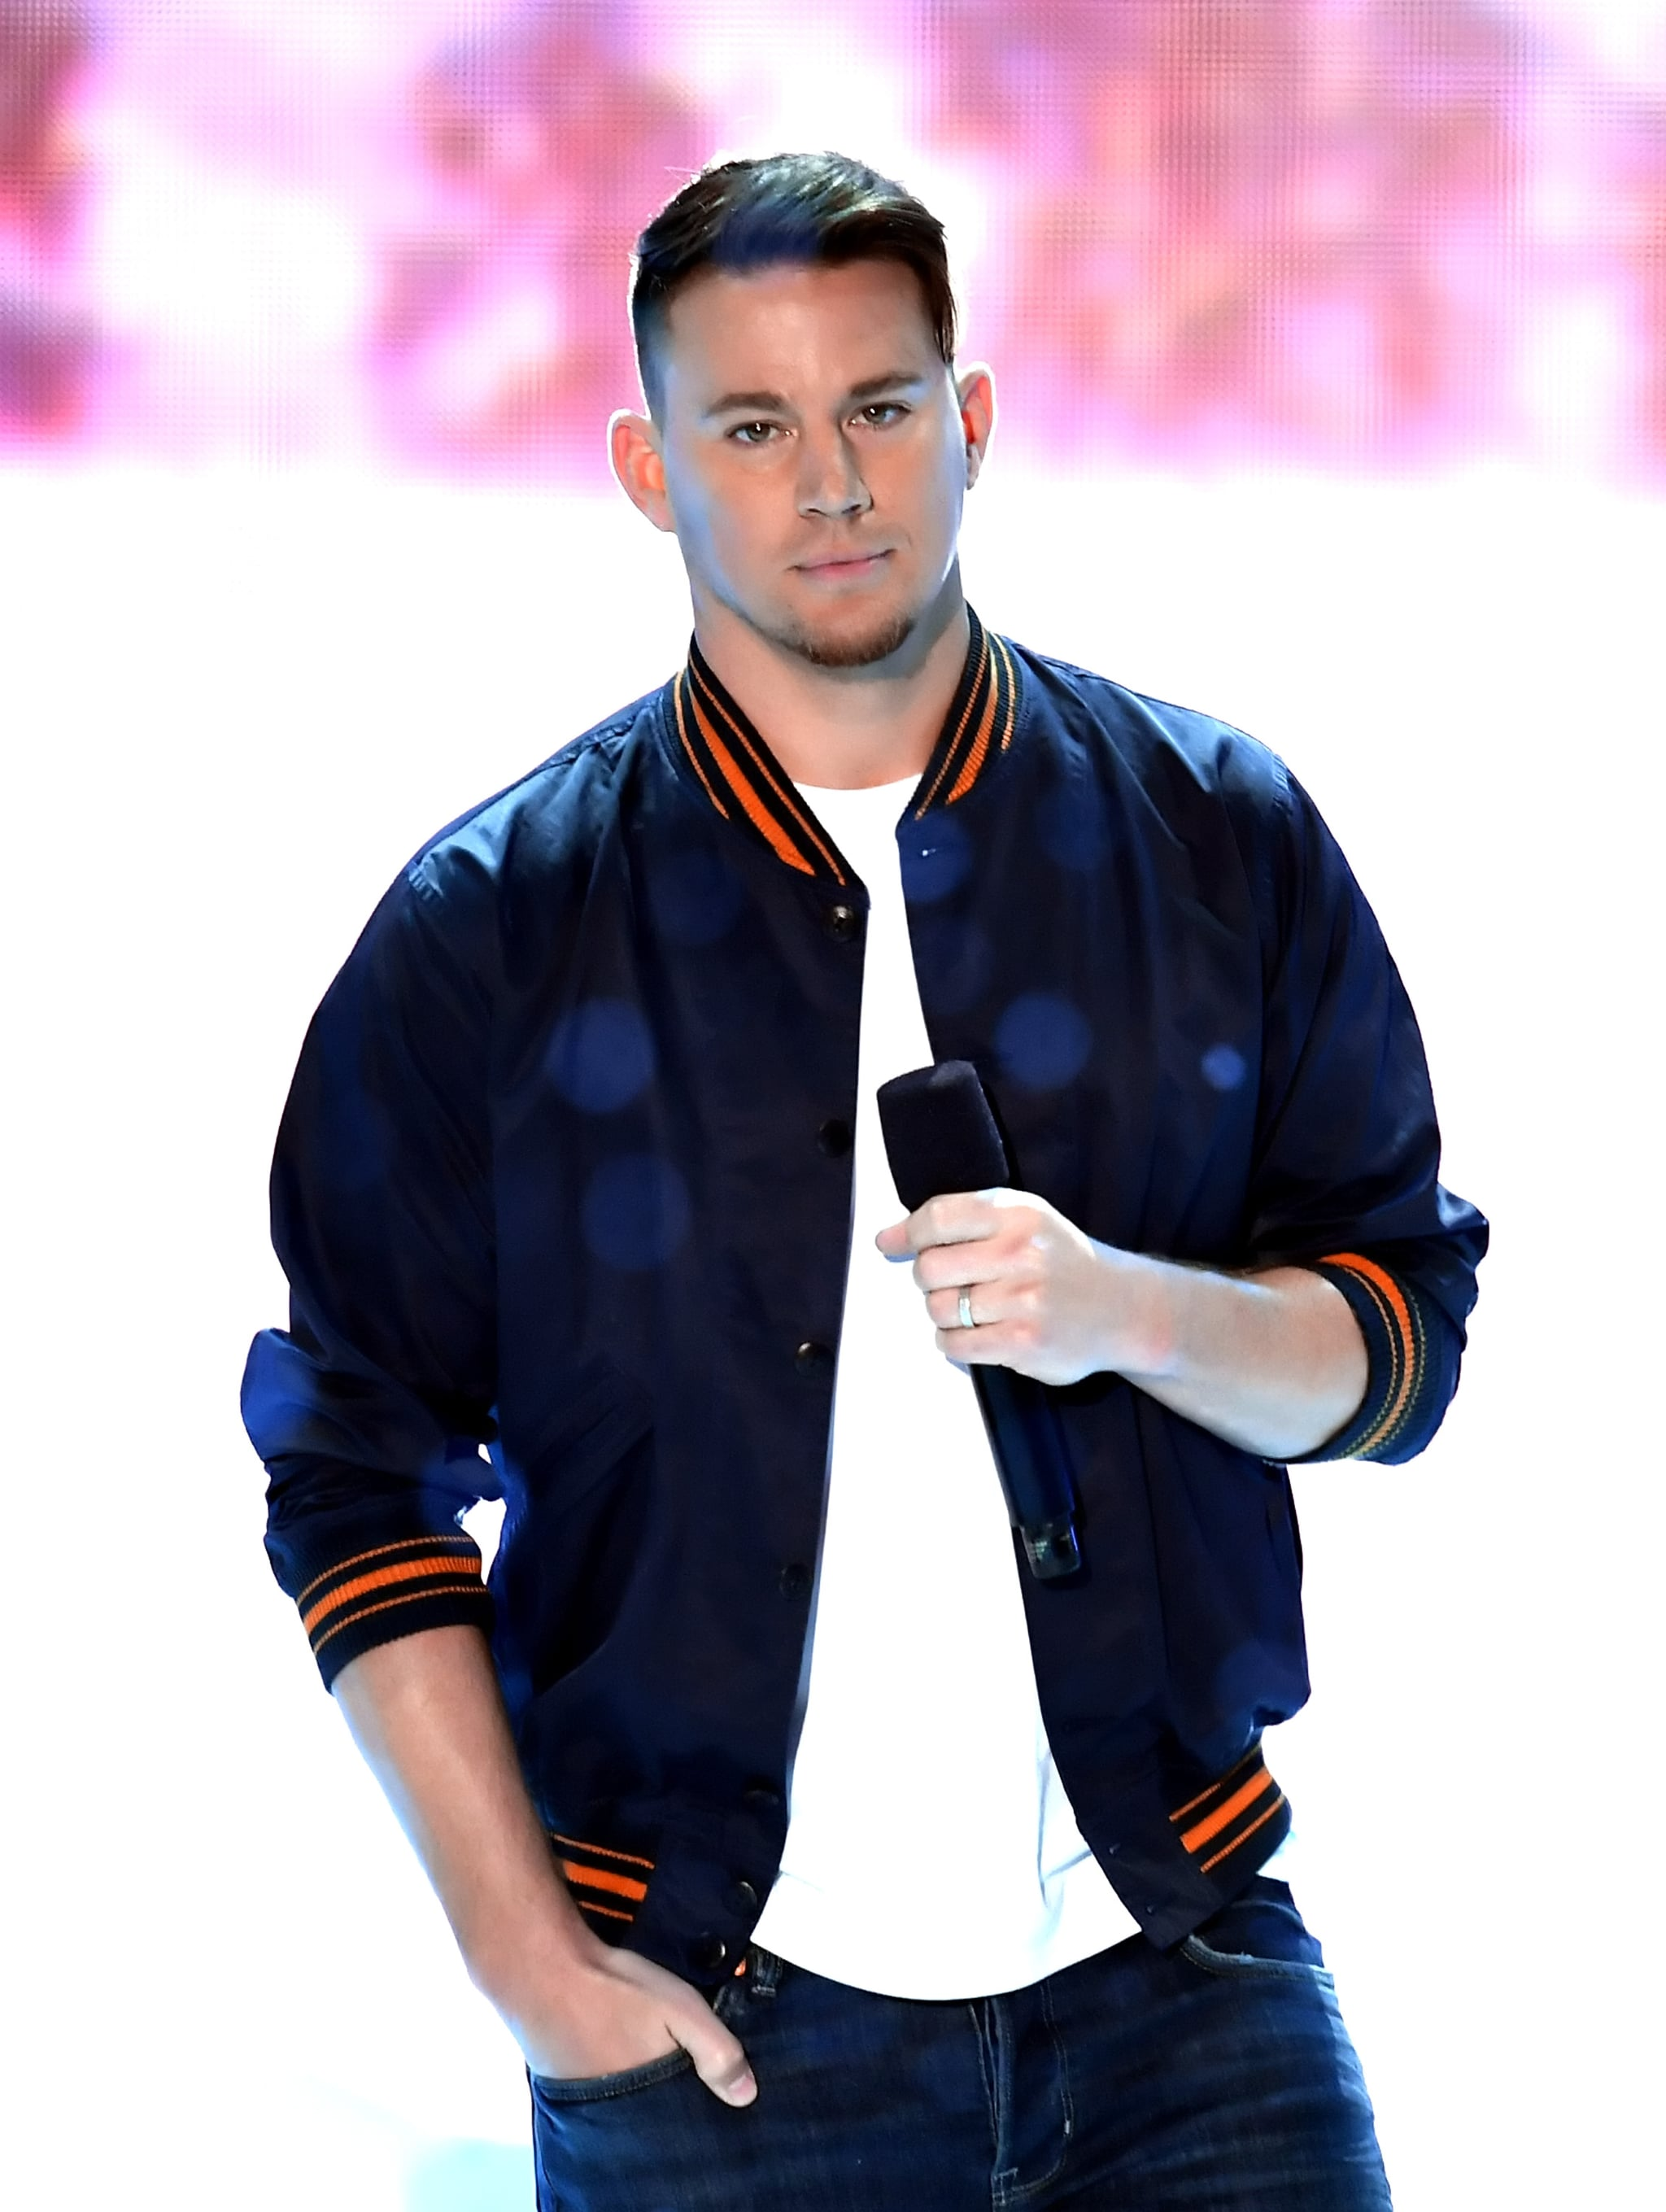 INGLEWOOD, CA - MARCH 24:  Channing Tatum speaks onstage at Nickelodeon's 2018 Kids' Choice Awards at The Forum on March 24, 2018 in Inglewood, California.  (Photo by Kevin Winter/Getty Images)